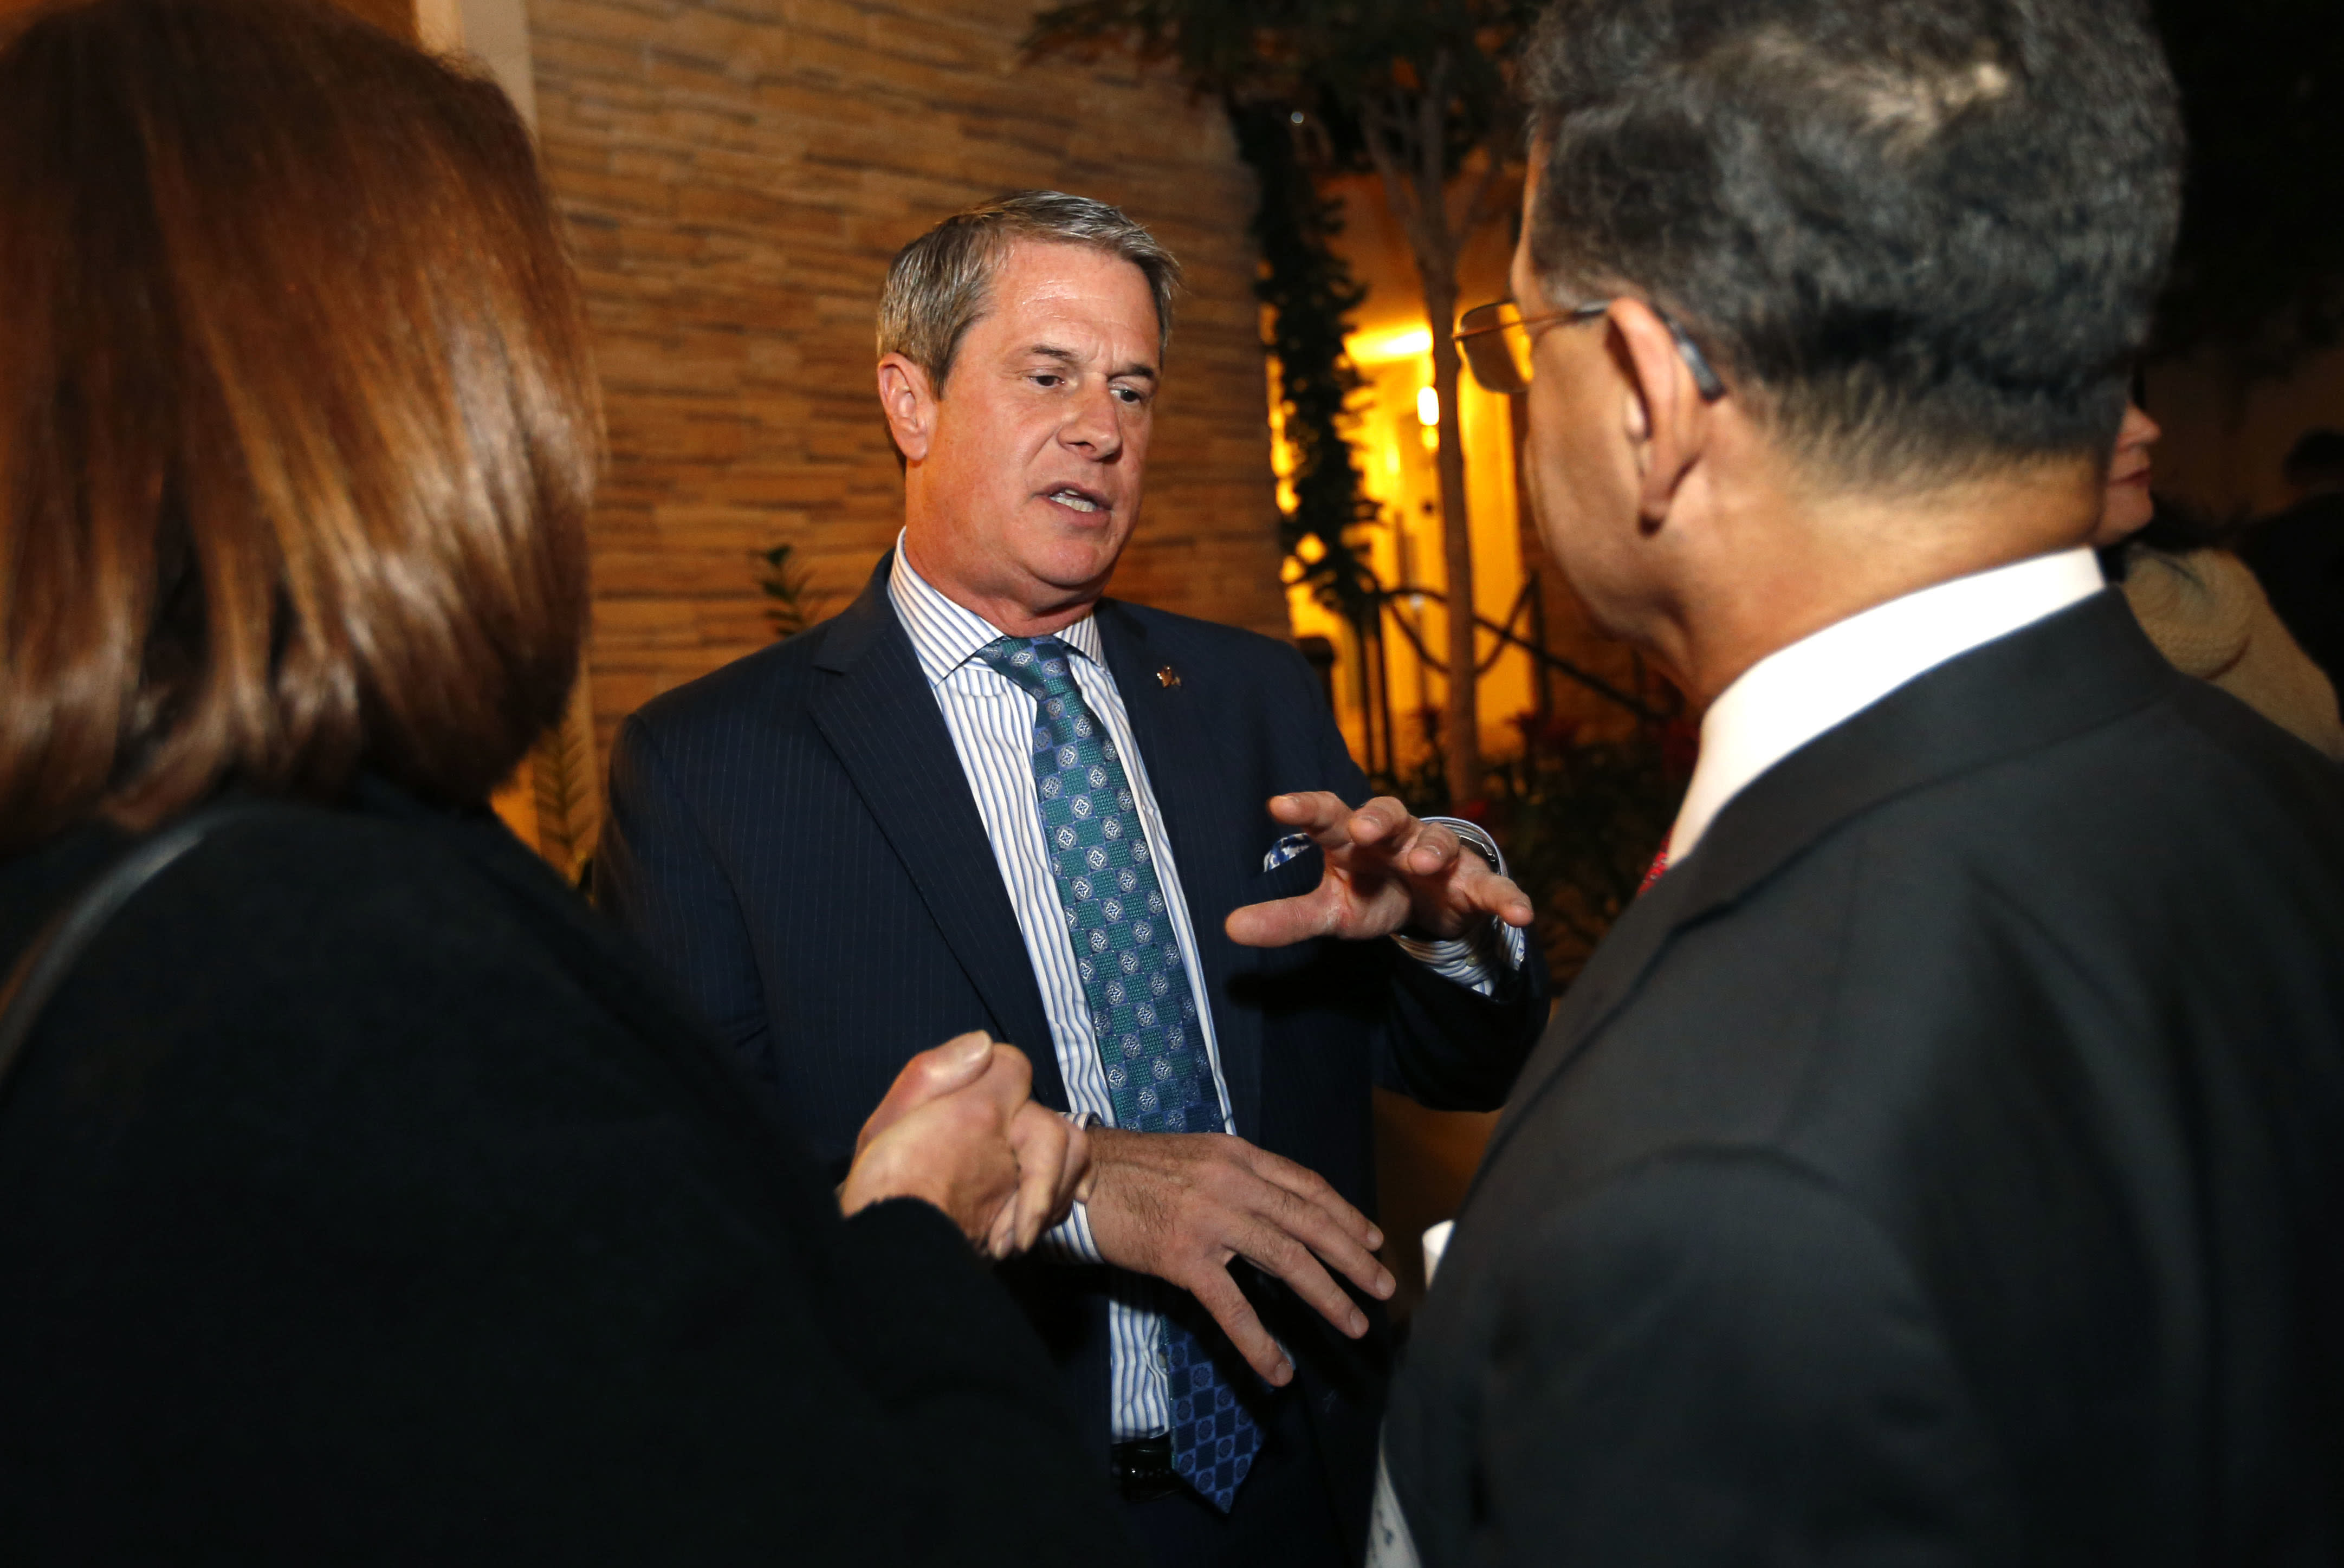 Sen. David Vitter, R-La., talks to supporters of Louisiana state treasurer John Kennedy, at Kennedy's election watch party, in Baton Rouge, La., Saturday, Dec. 10, 2016. Kennedy won the senate seat vacated by Vitter. (AP Photo/Gerald Herbert)